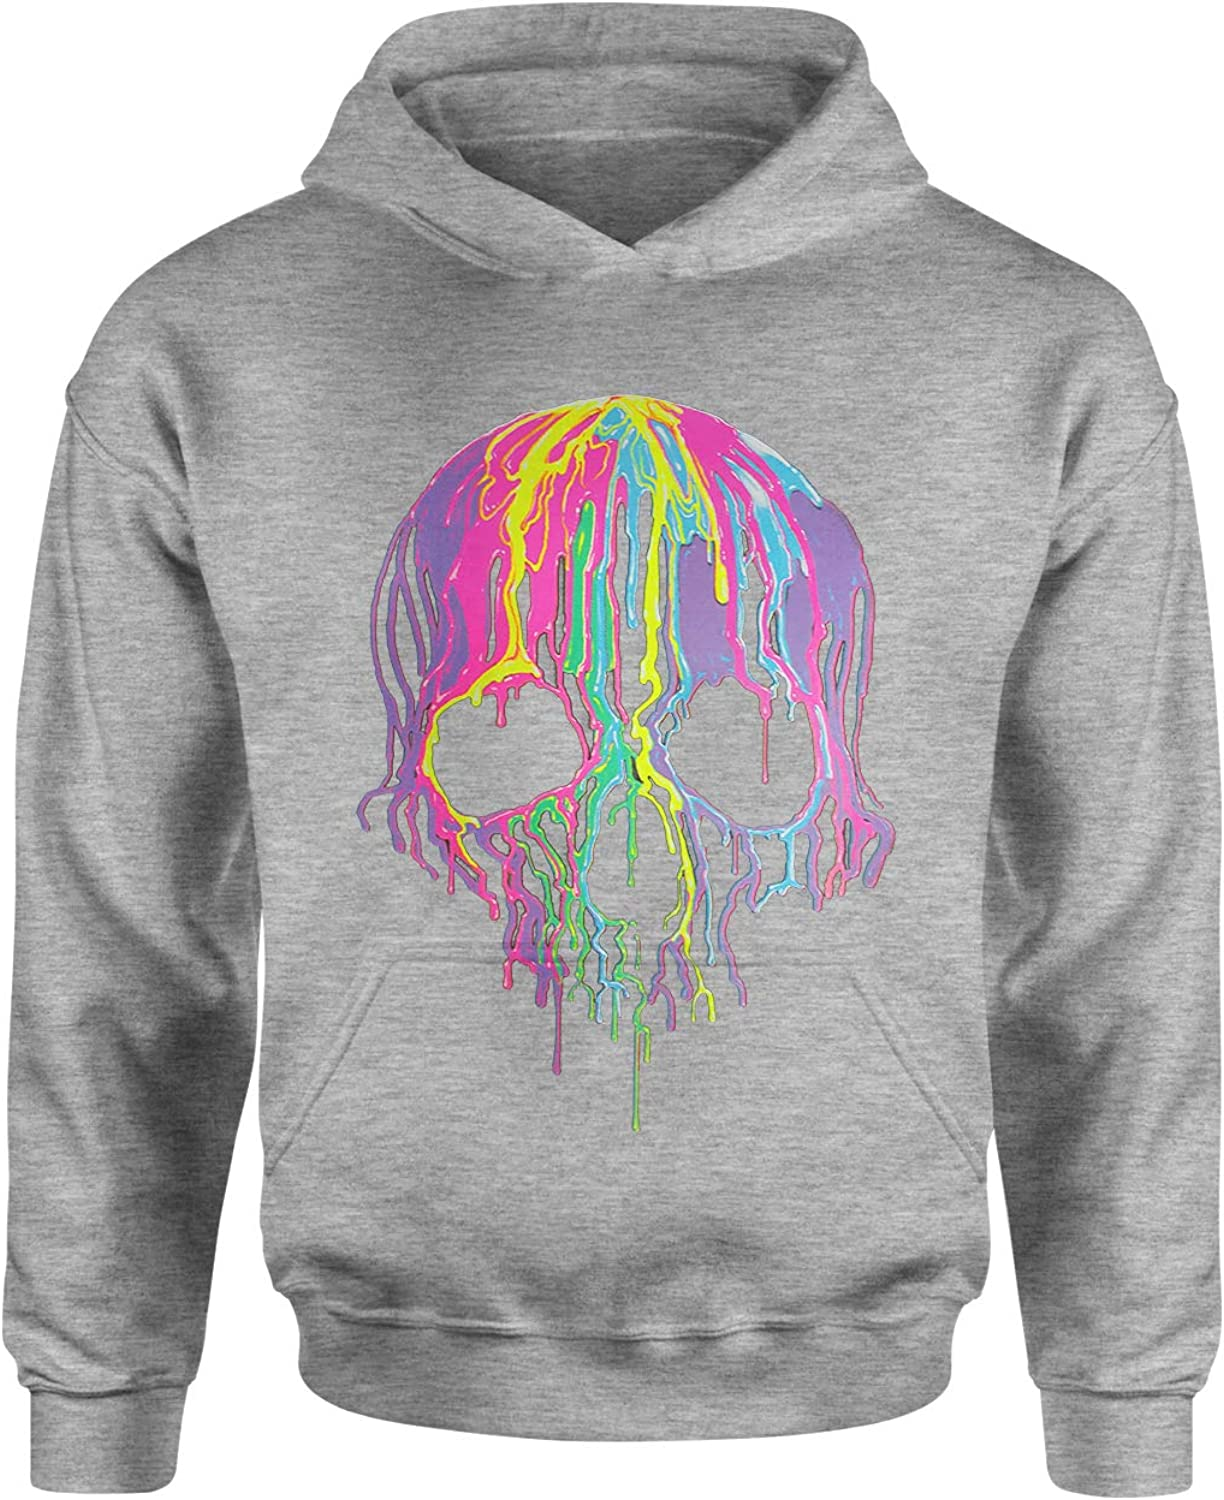 Expression Tees Neon Dripping Skull Youth-Sized Hoodie